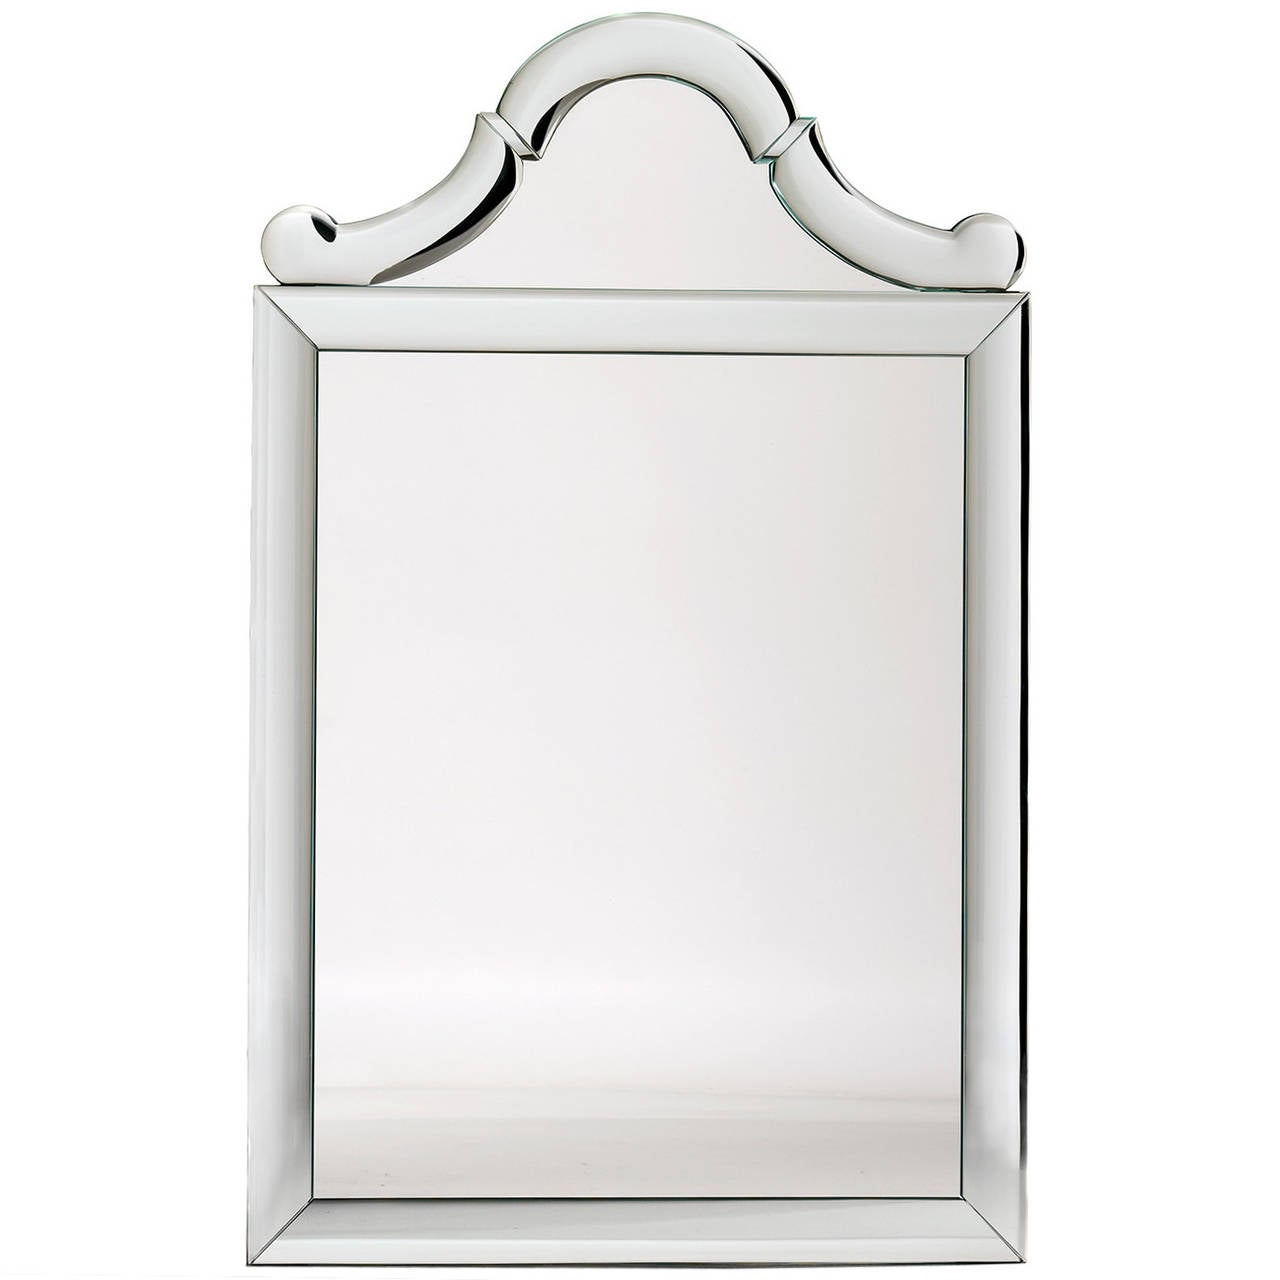 Queen Anne-Shaped-Top Bullnose Mirror